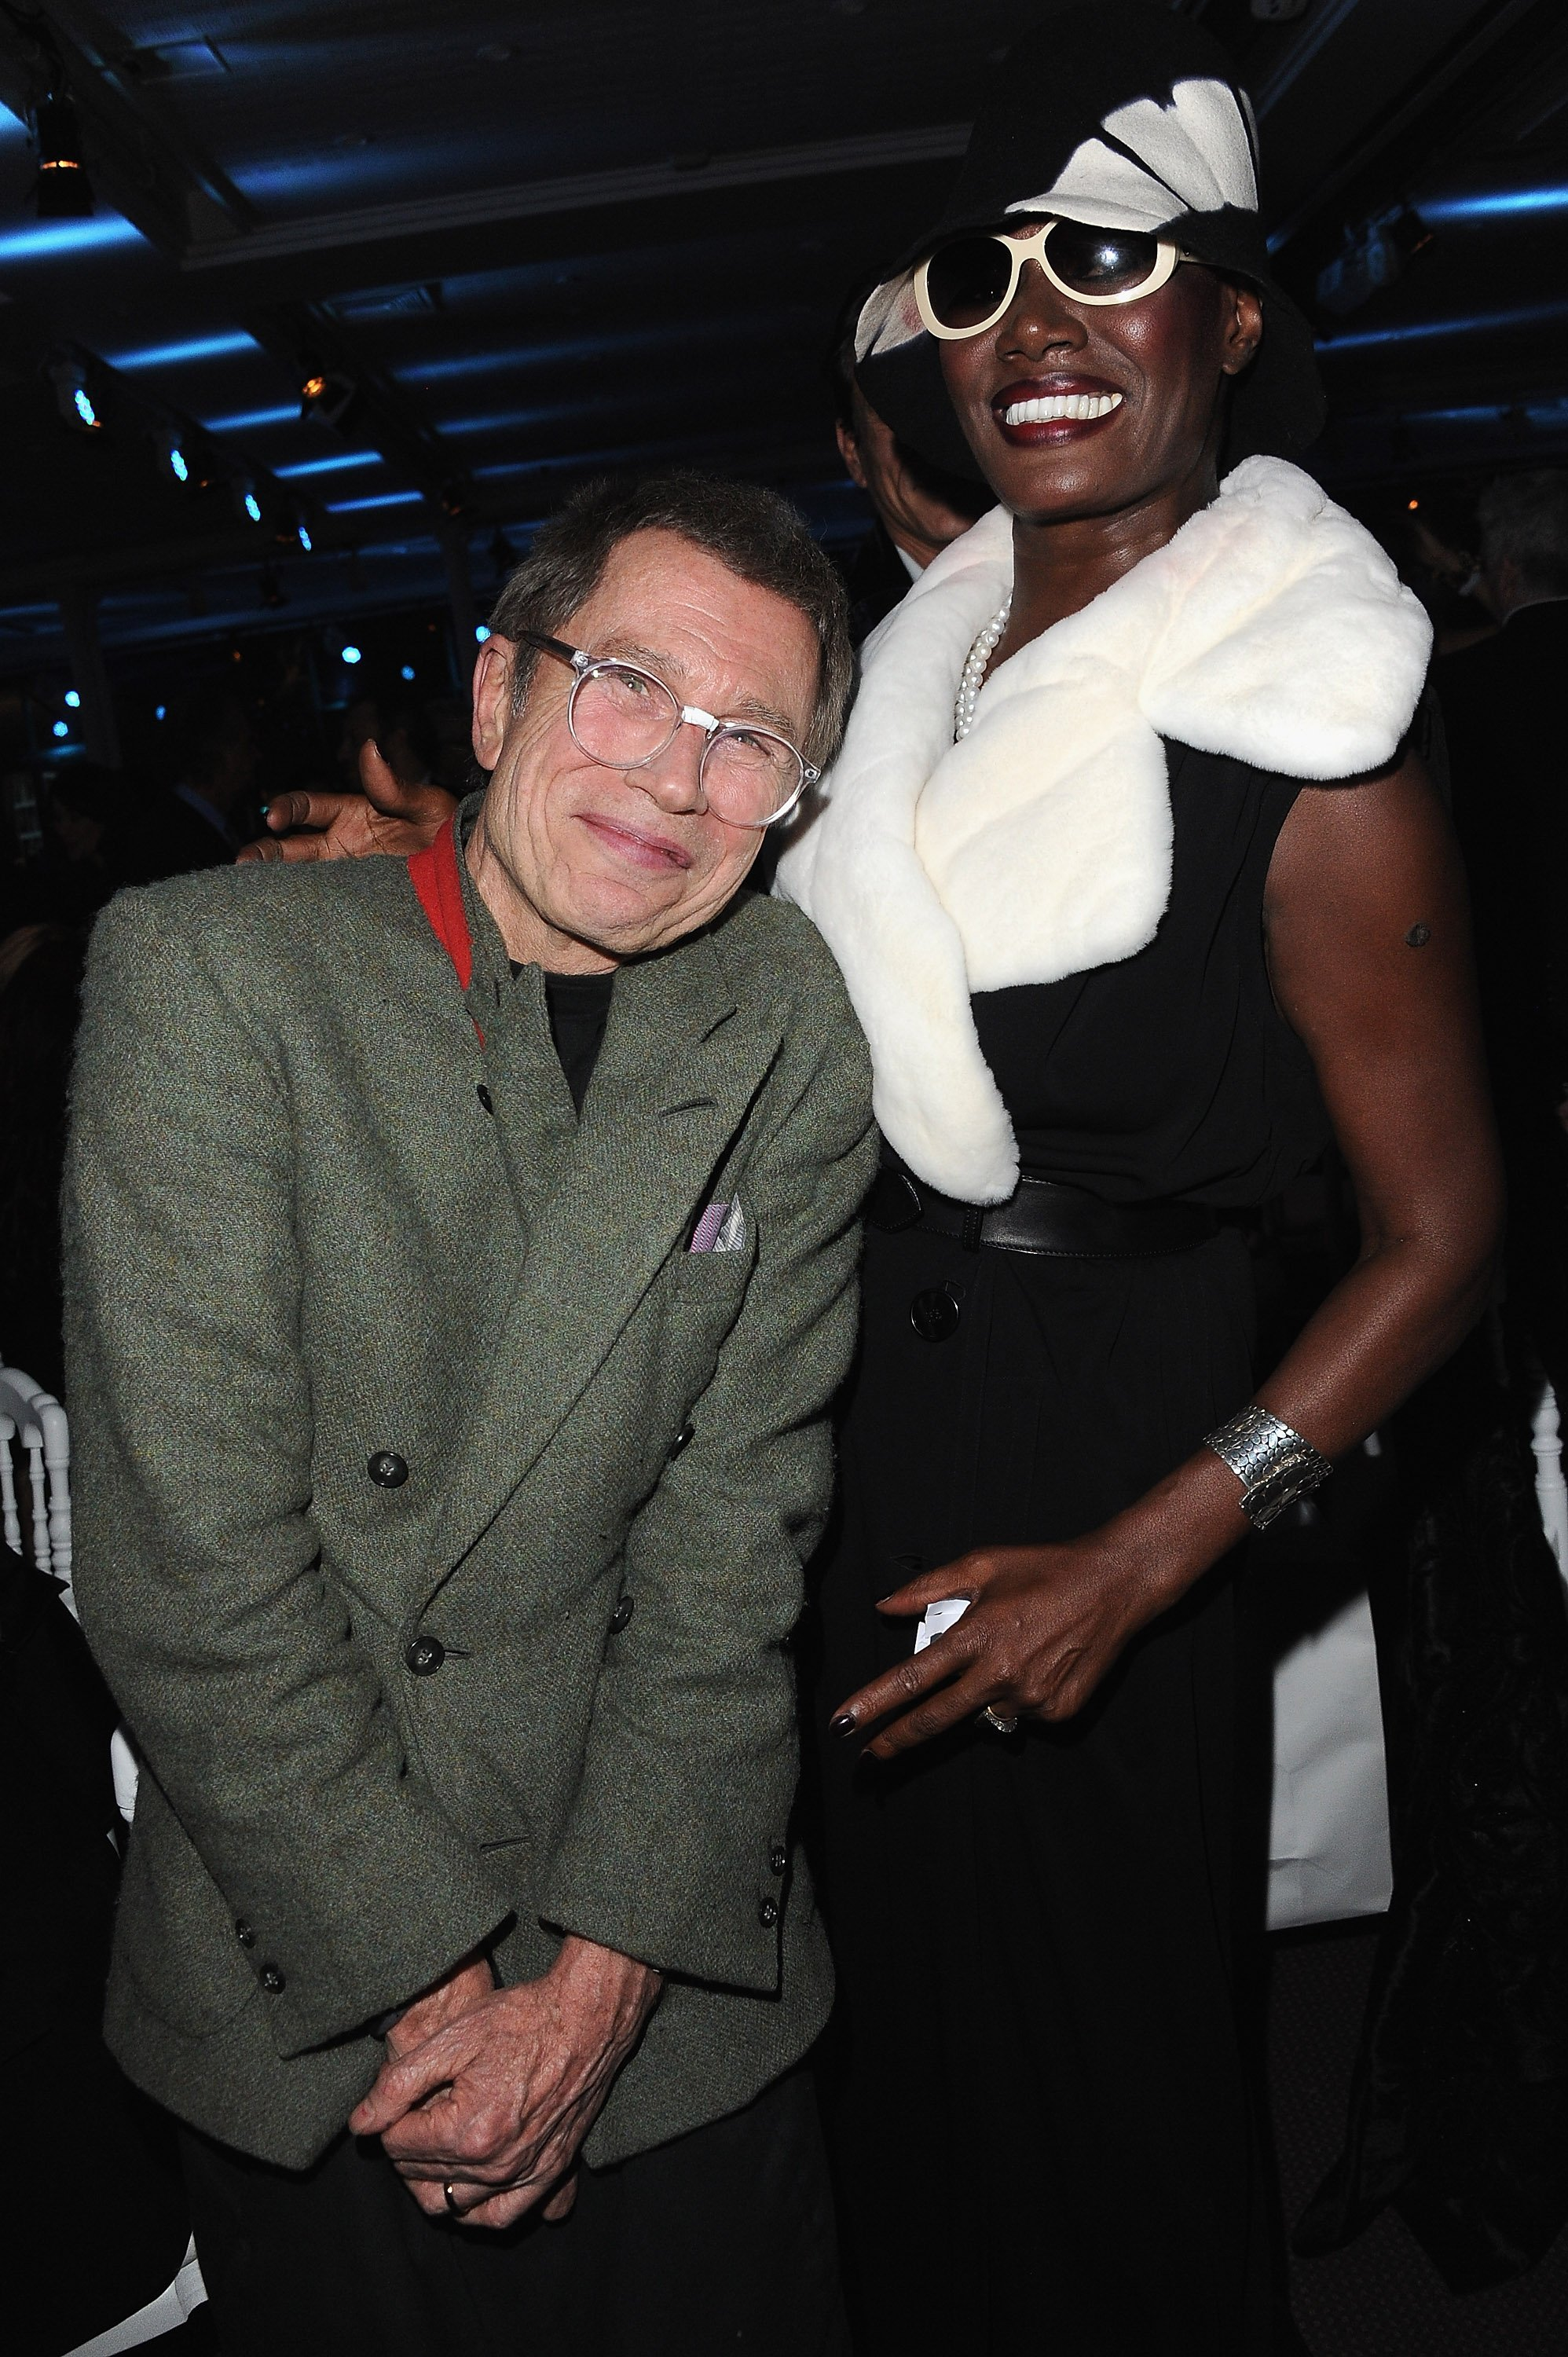 Grace Jones & her son's father, Jean-Paul Goude at the Sidaction Gala Dinner in Paris, France on Jan. 26, 2012. |Photo: Getty Images.